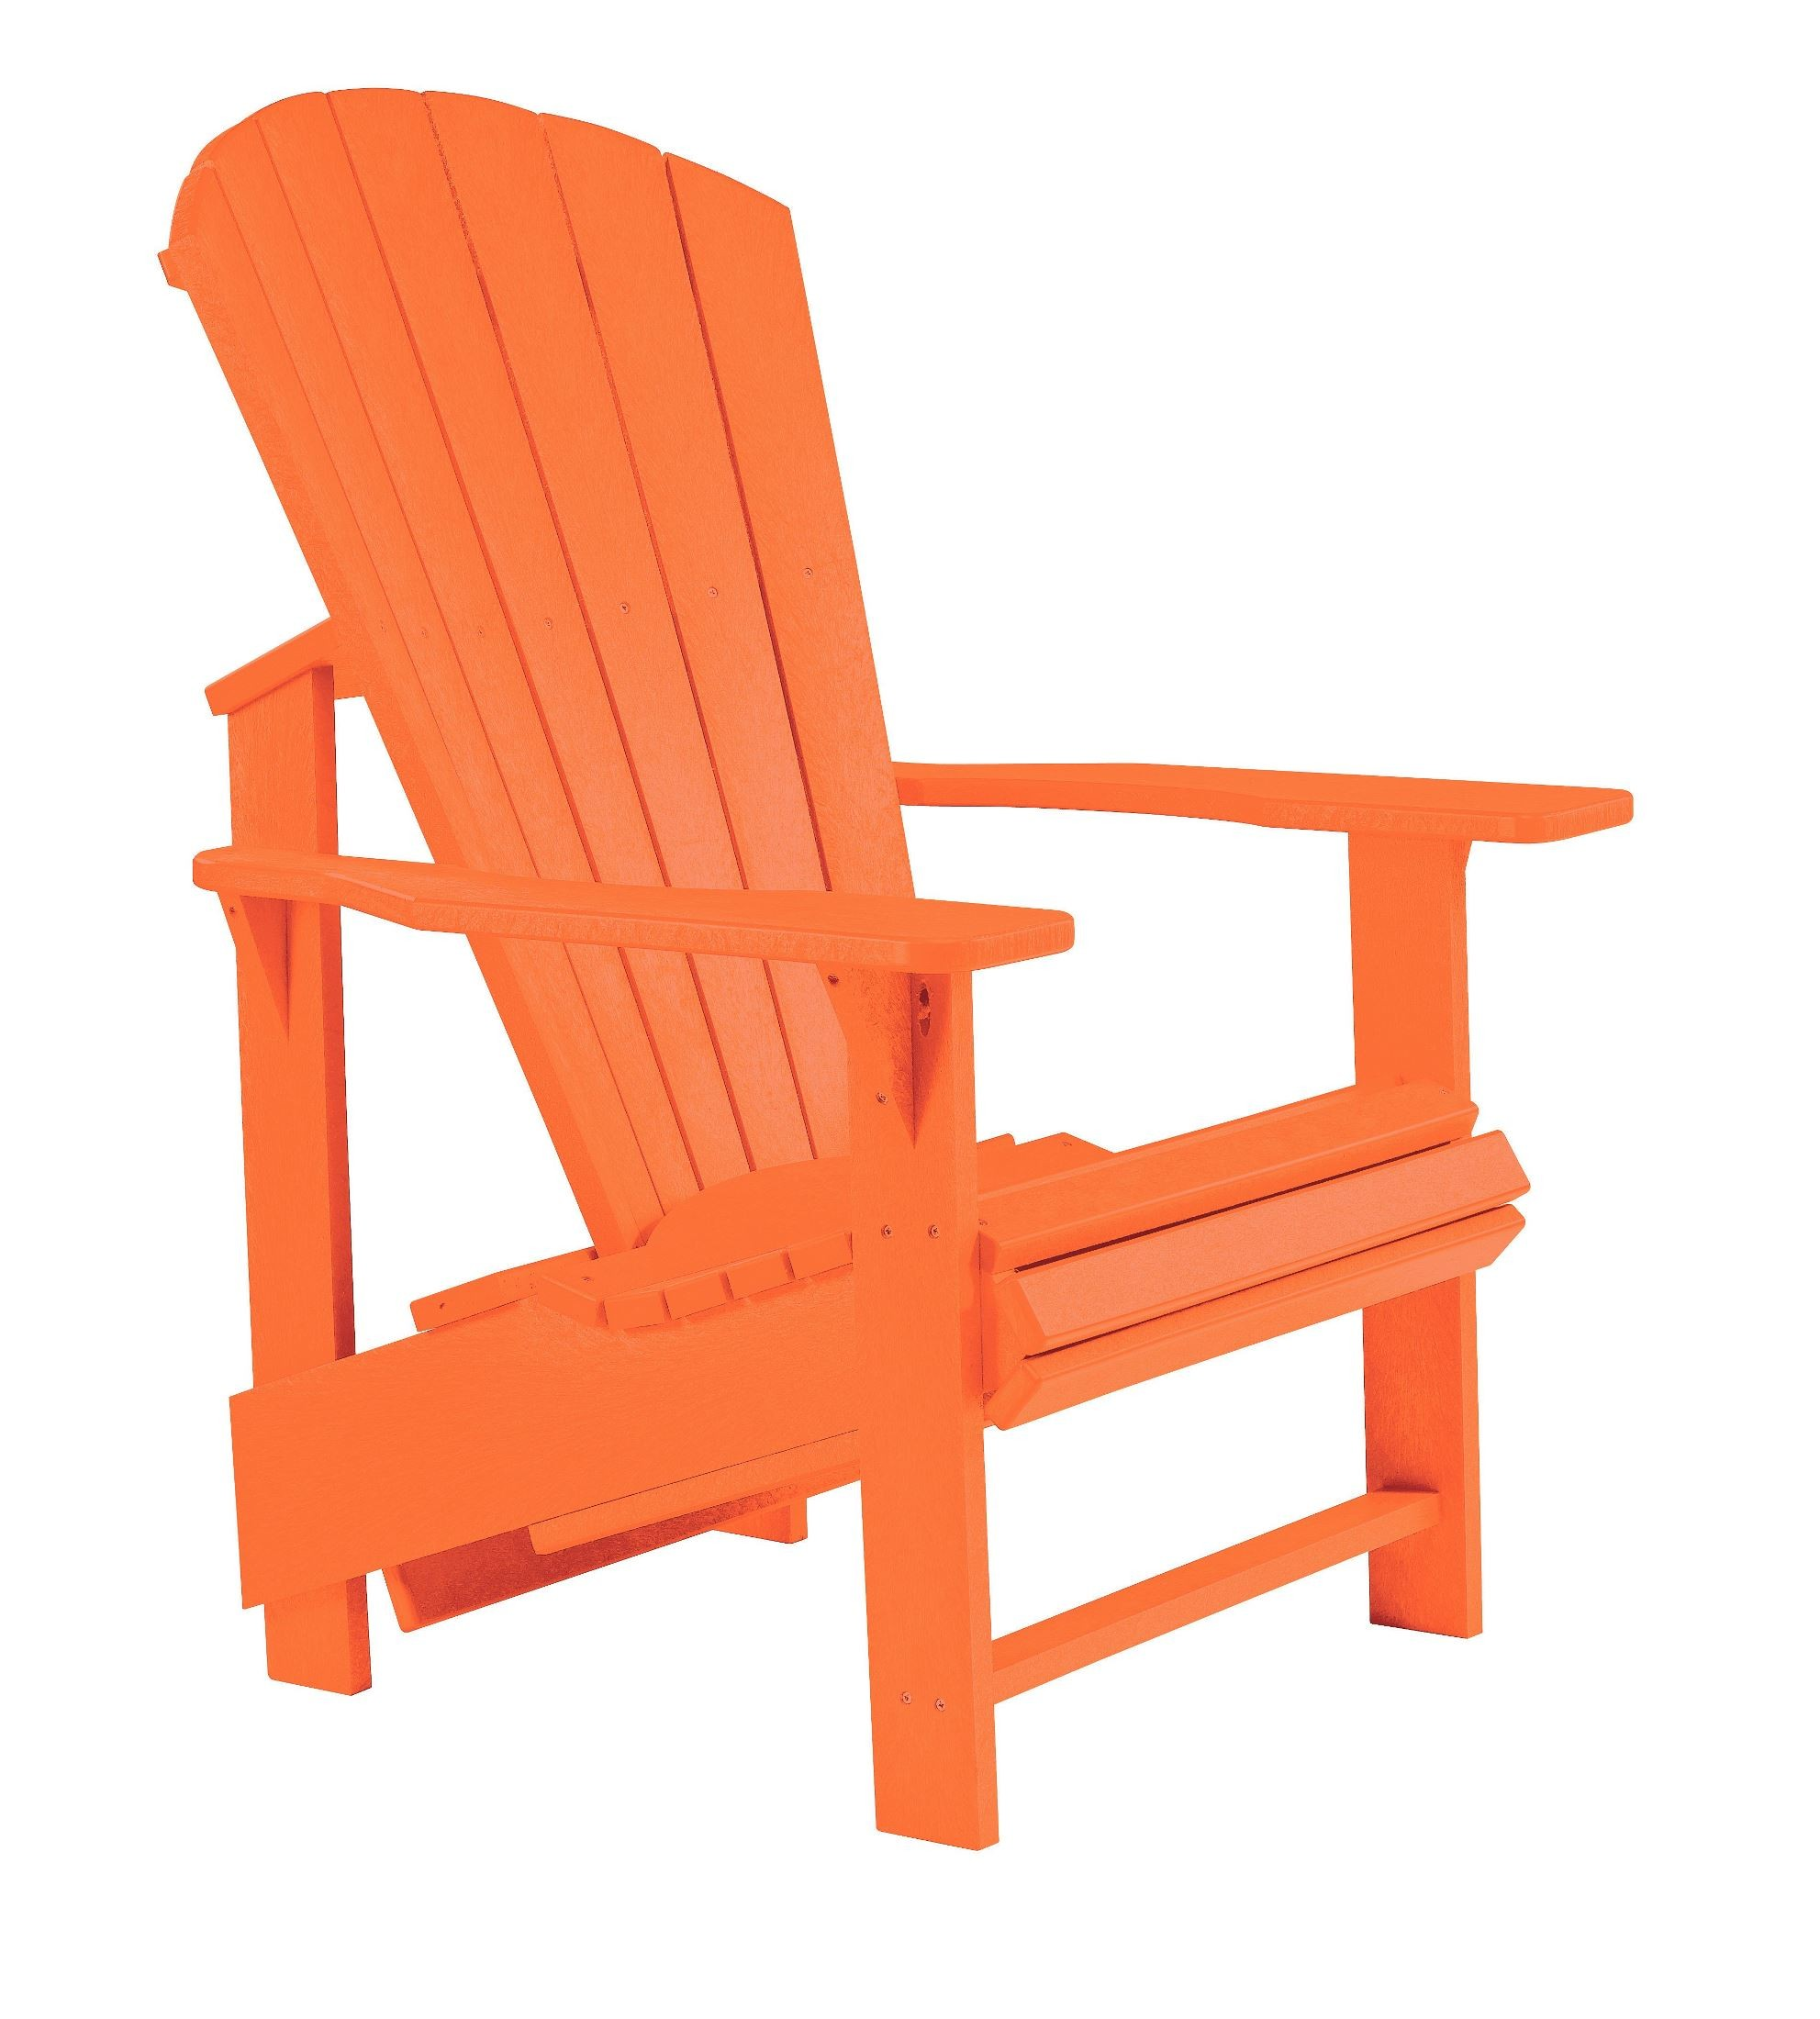 upright recliner chairs pottery barn kids beach chair generations orange adirondack from cr